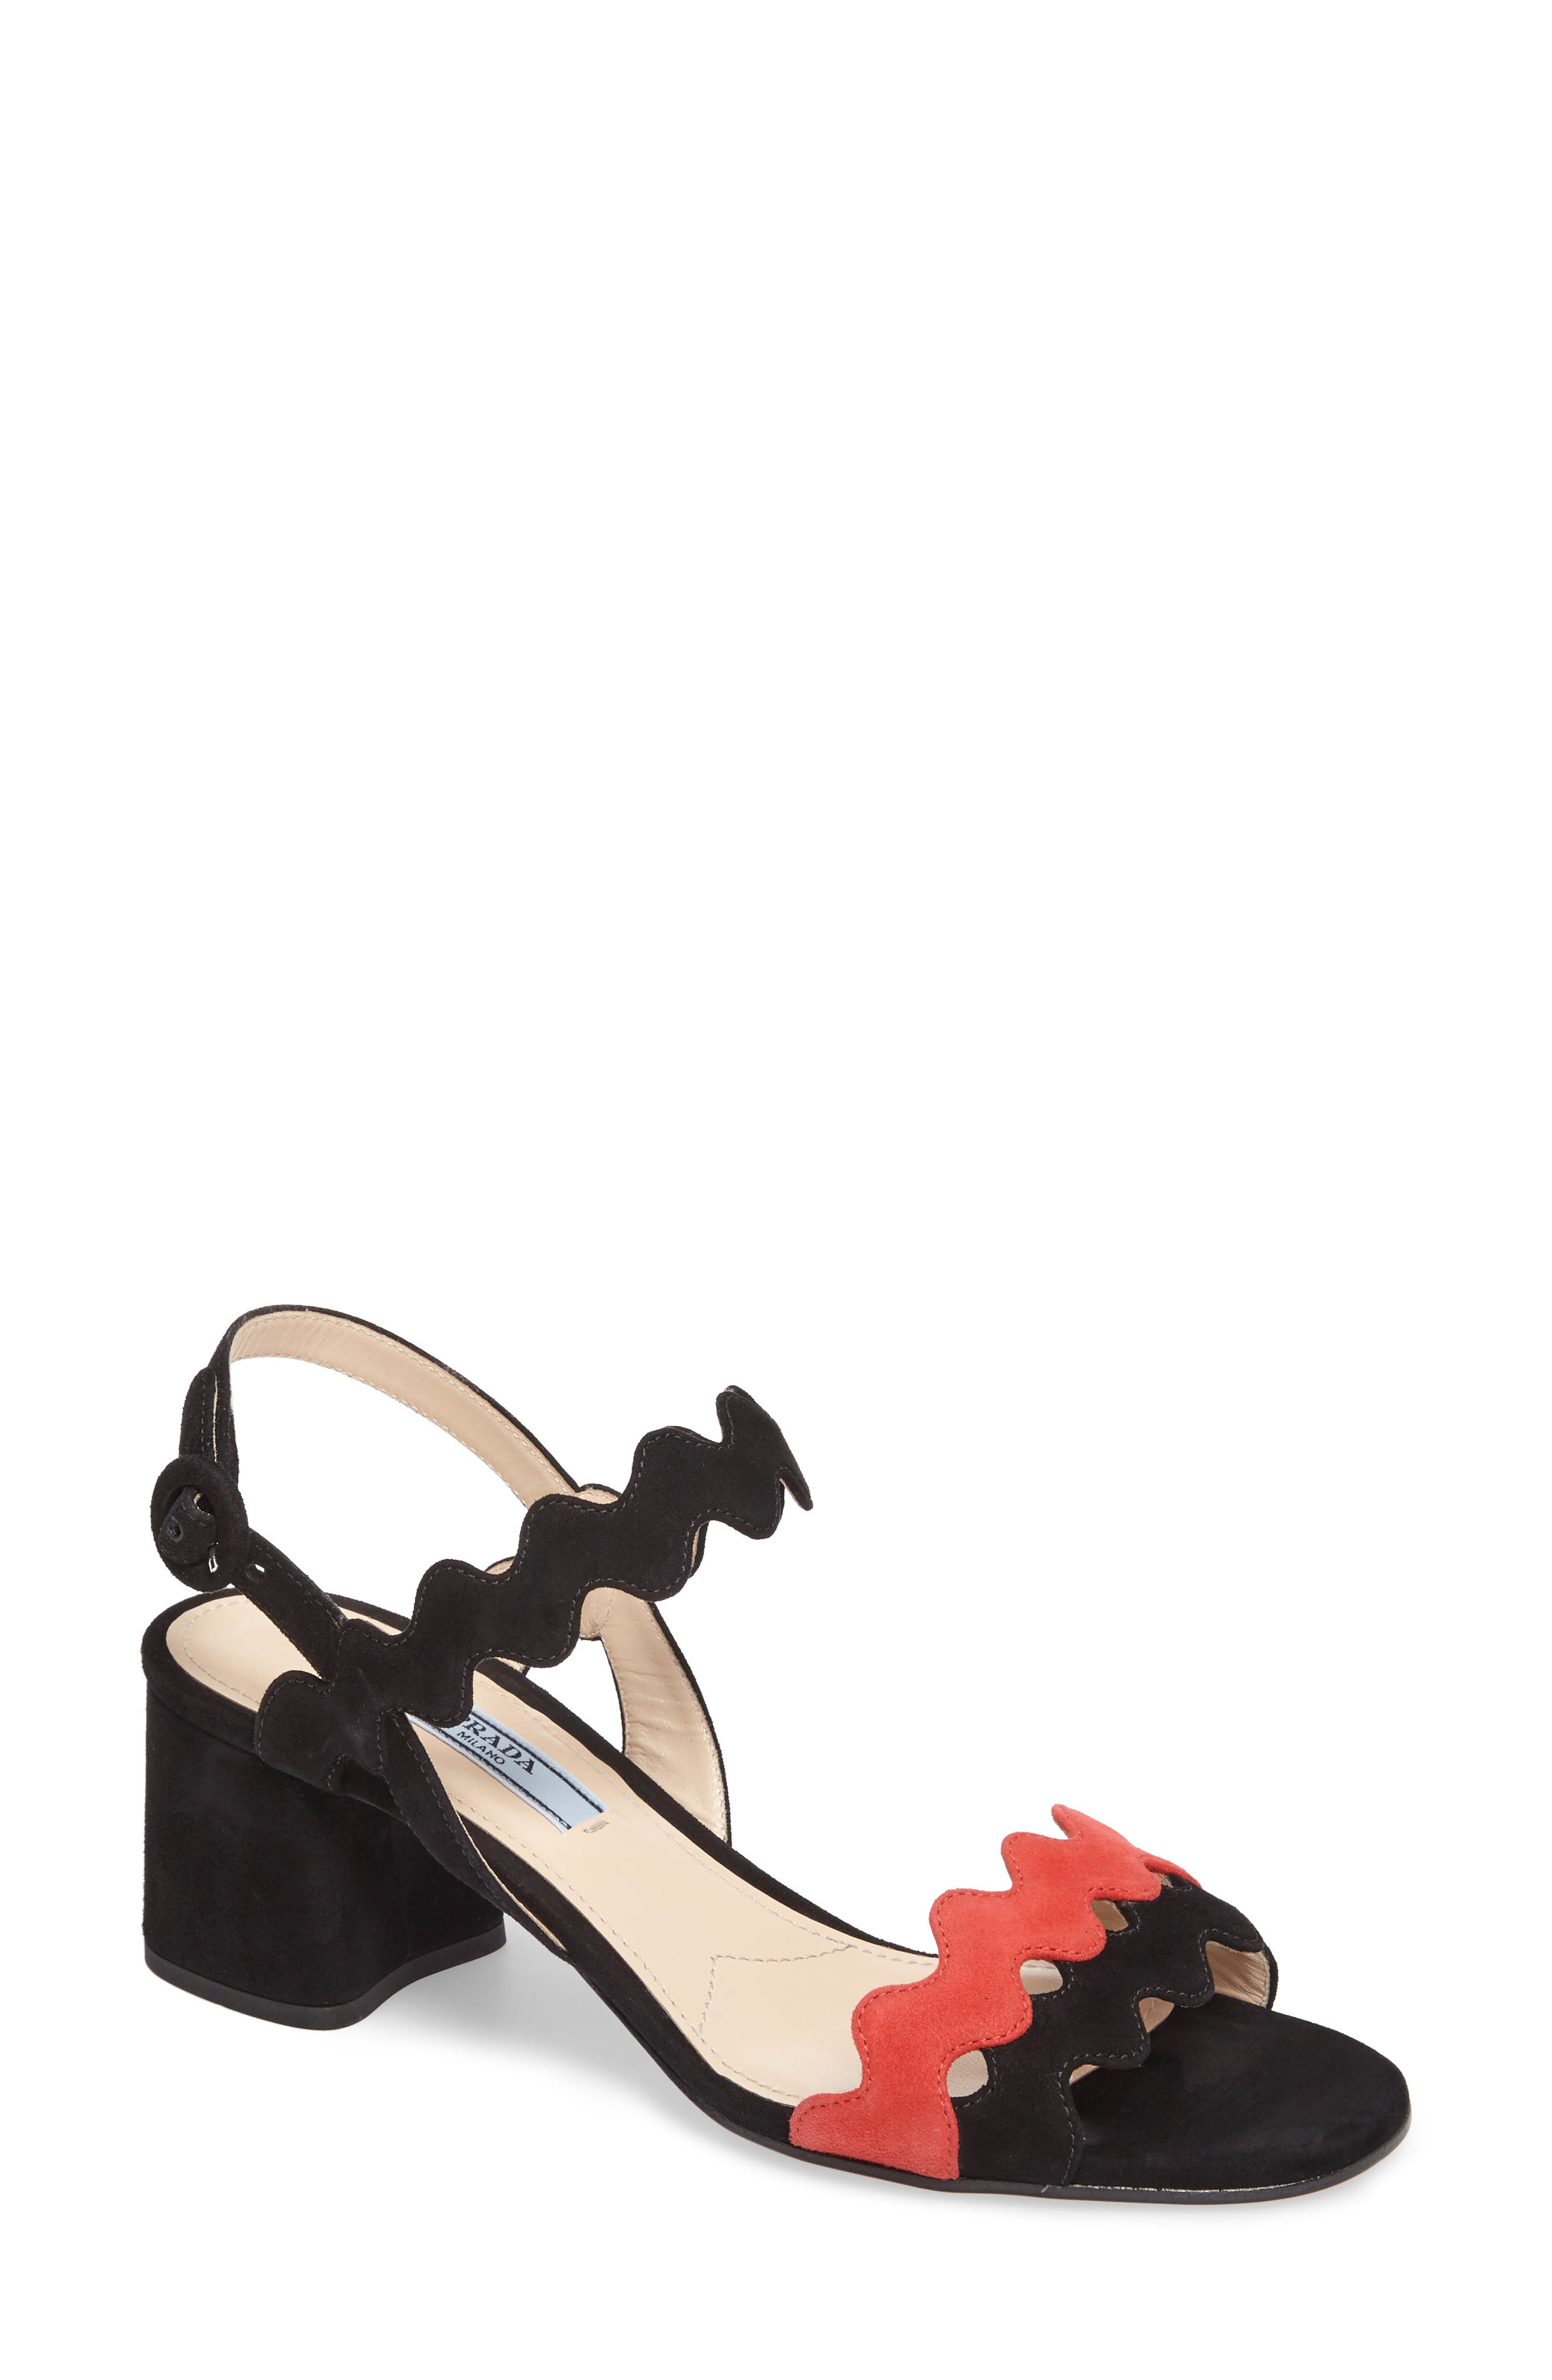 Alternate Image 1 Selected - Prada Double Strap Wave Sandal (Women)